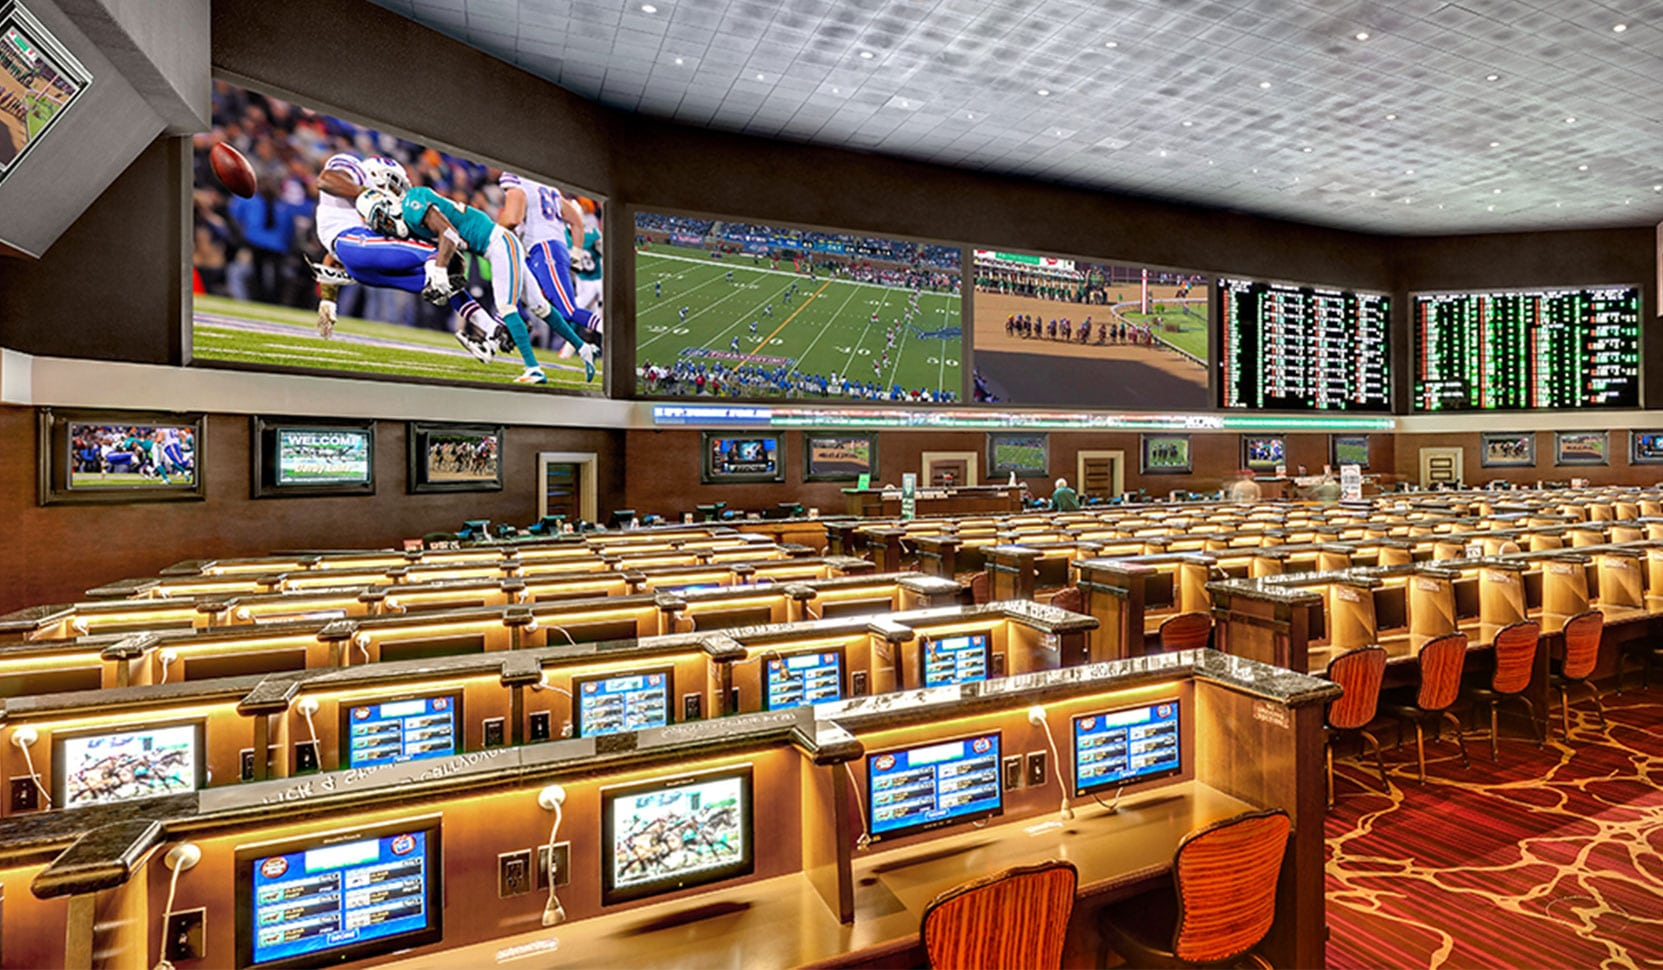 Why do so many casual bettors choose horse racing over other sports?